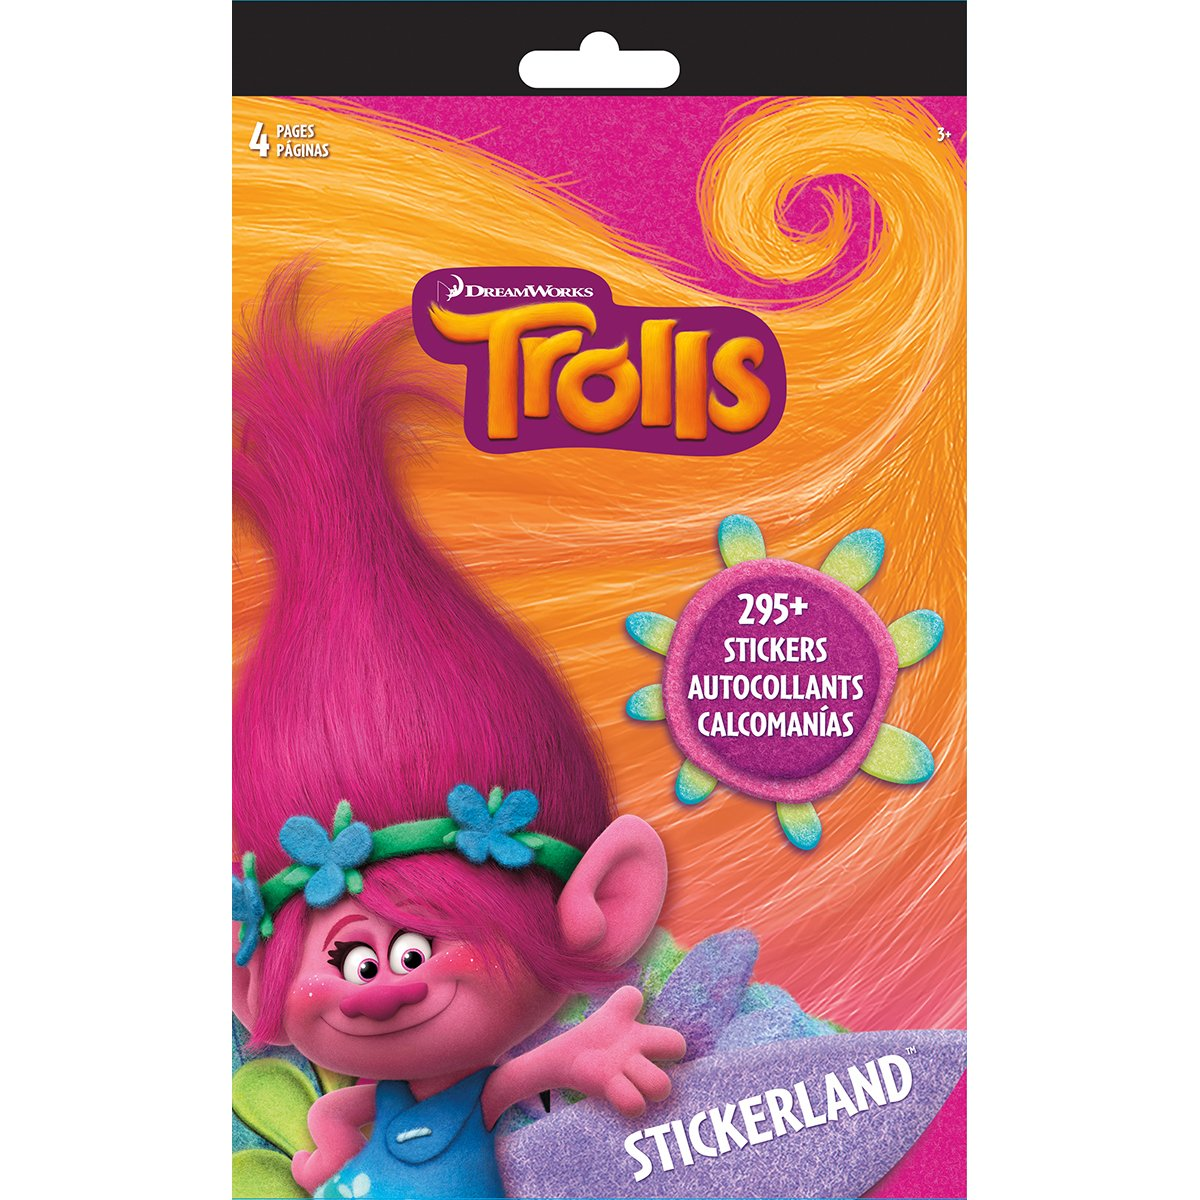 Trolls Stickerland Pad 295 Stickers